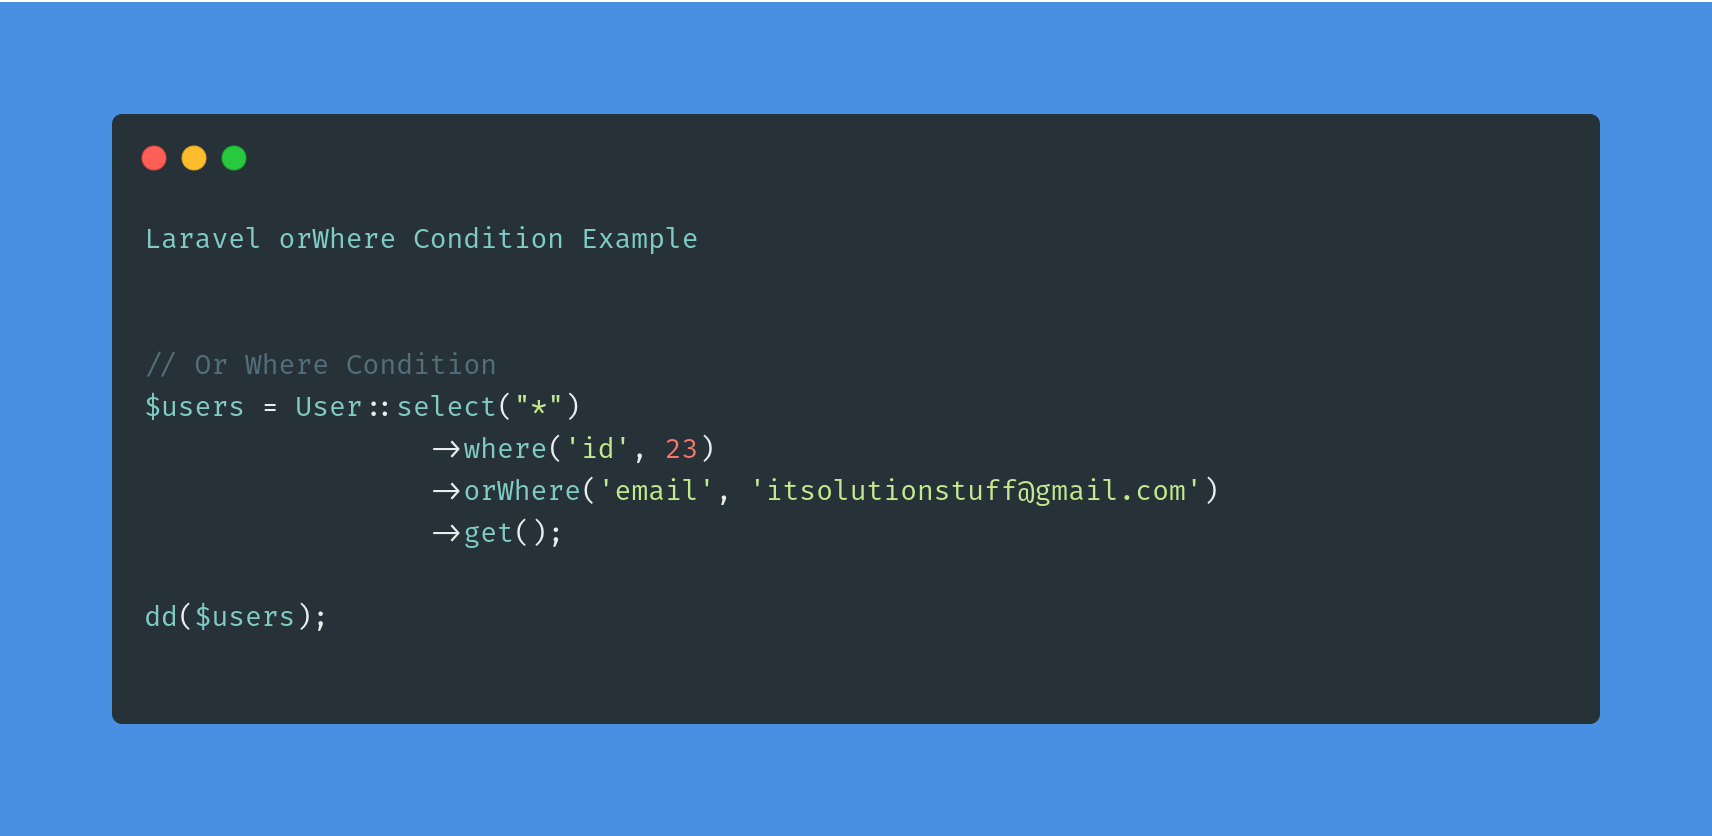 Laravel orWhere Condition using Eloquent Query